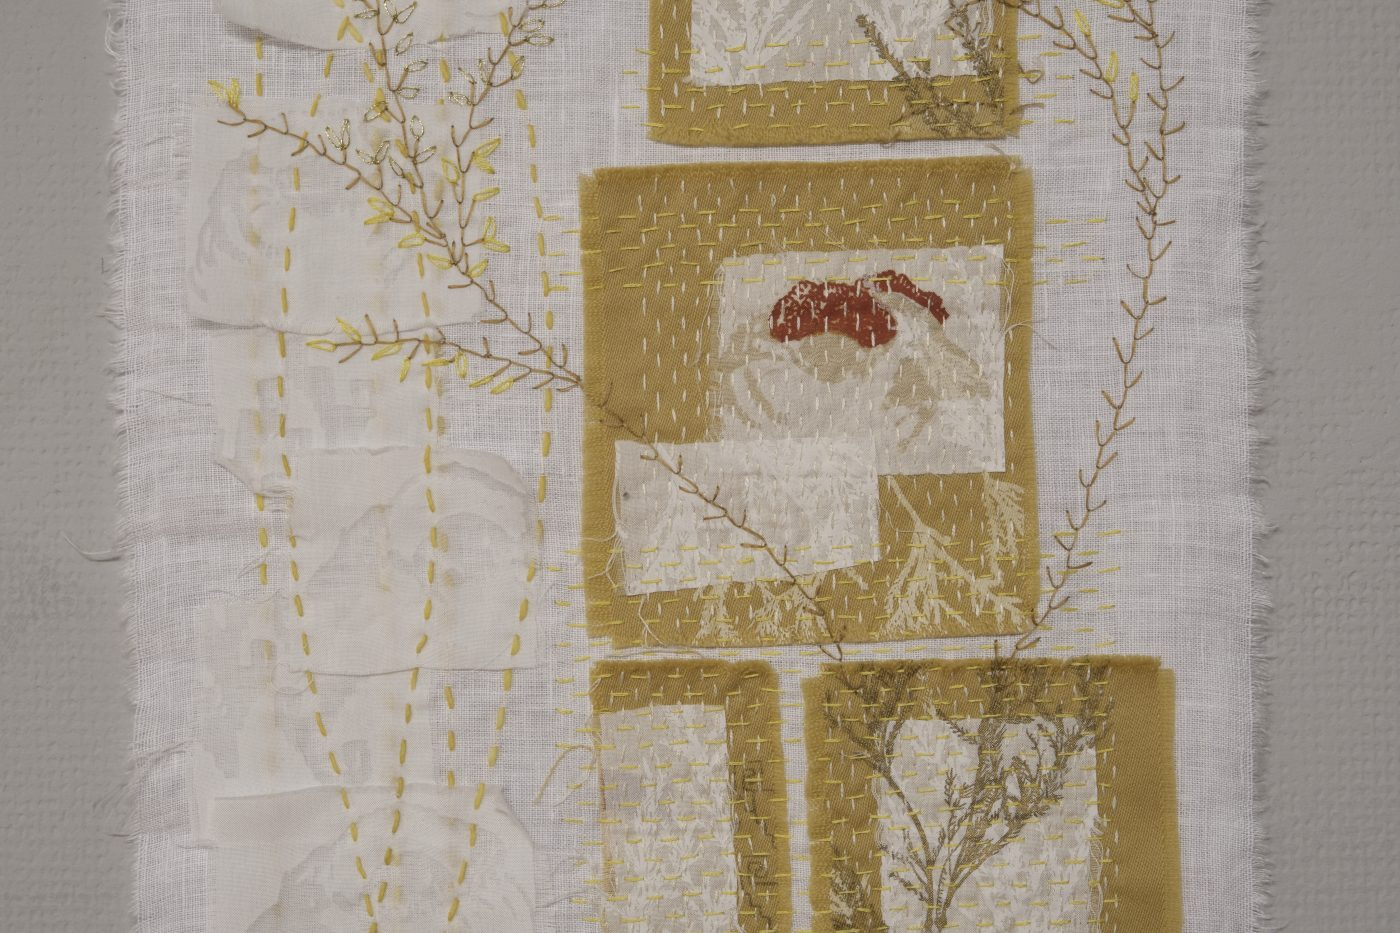 White hand stitched textile artwork with appliqued elements in dark yellow